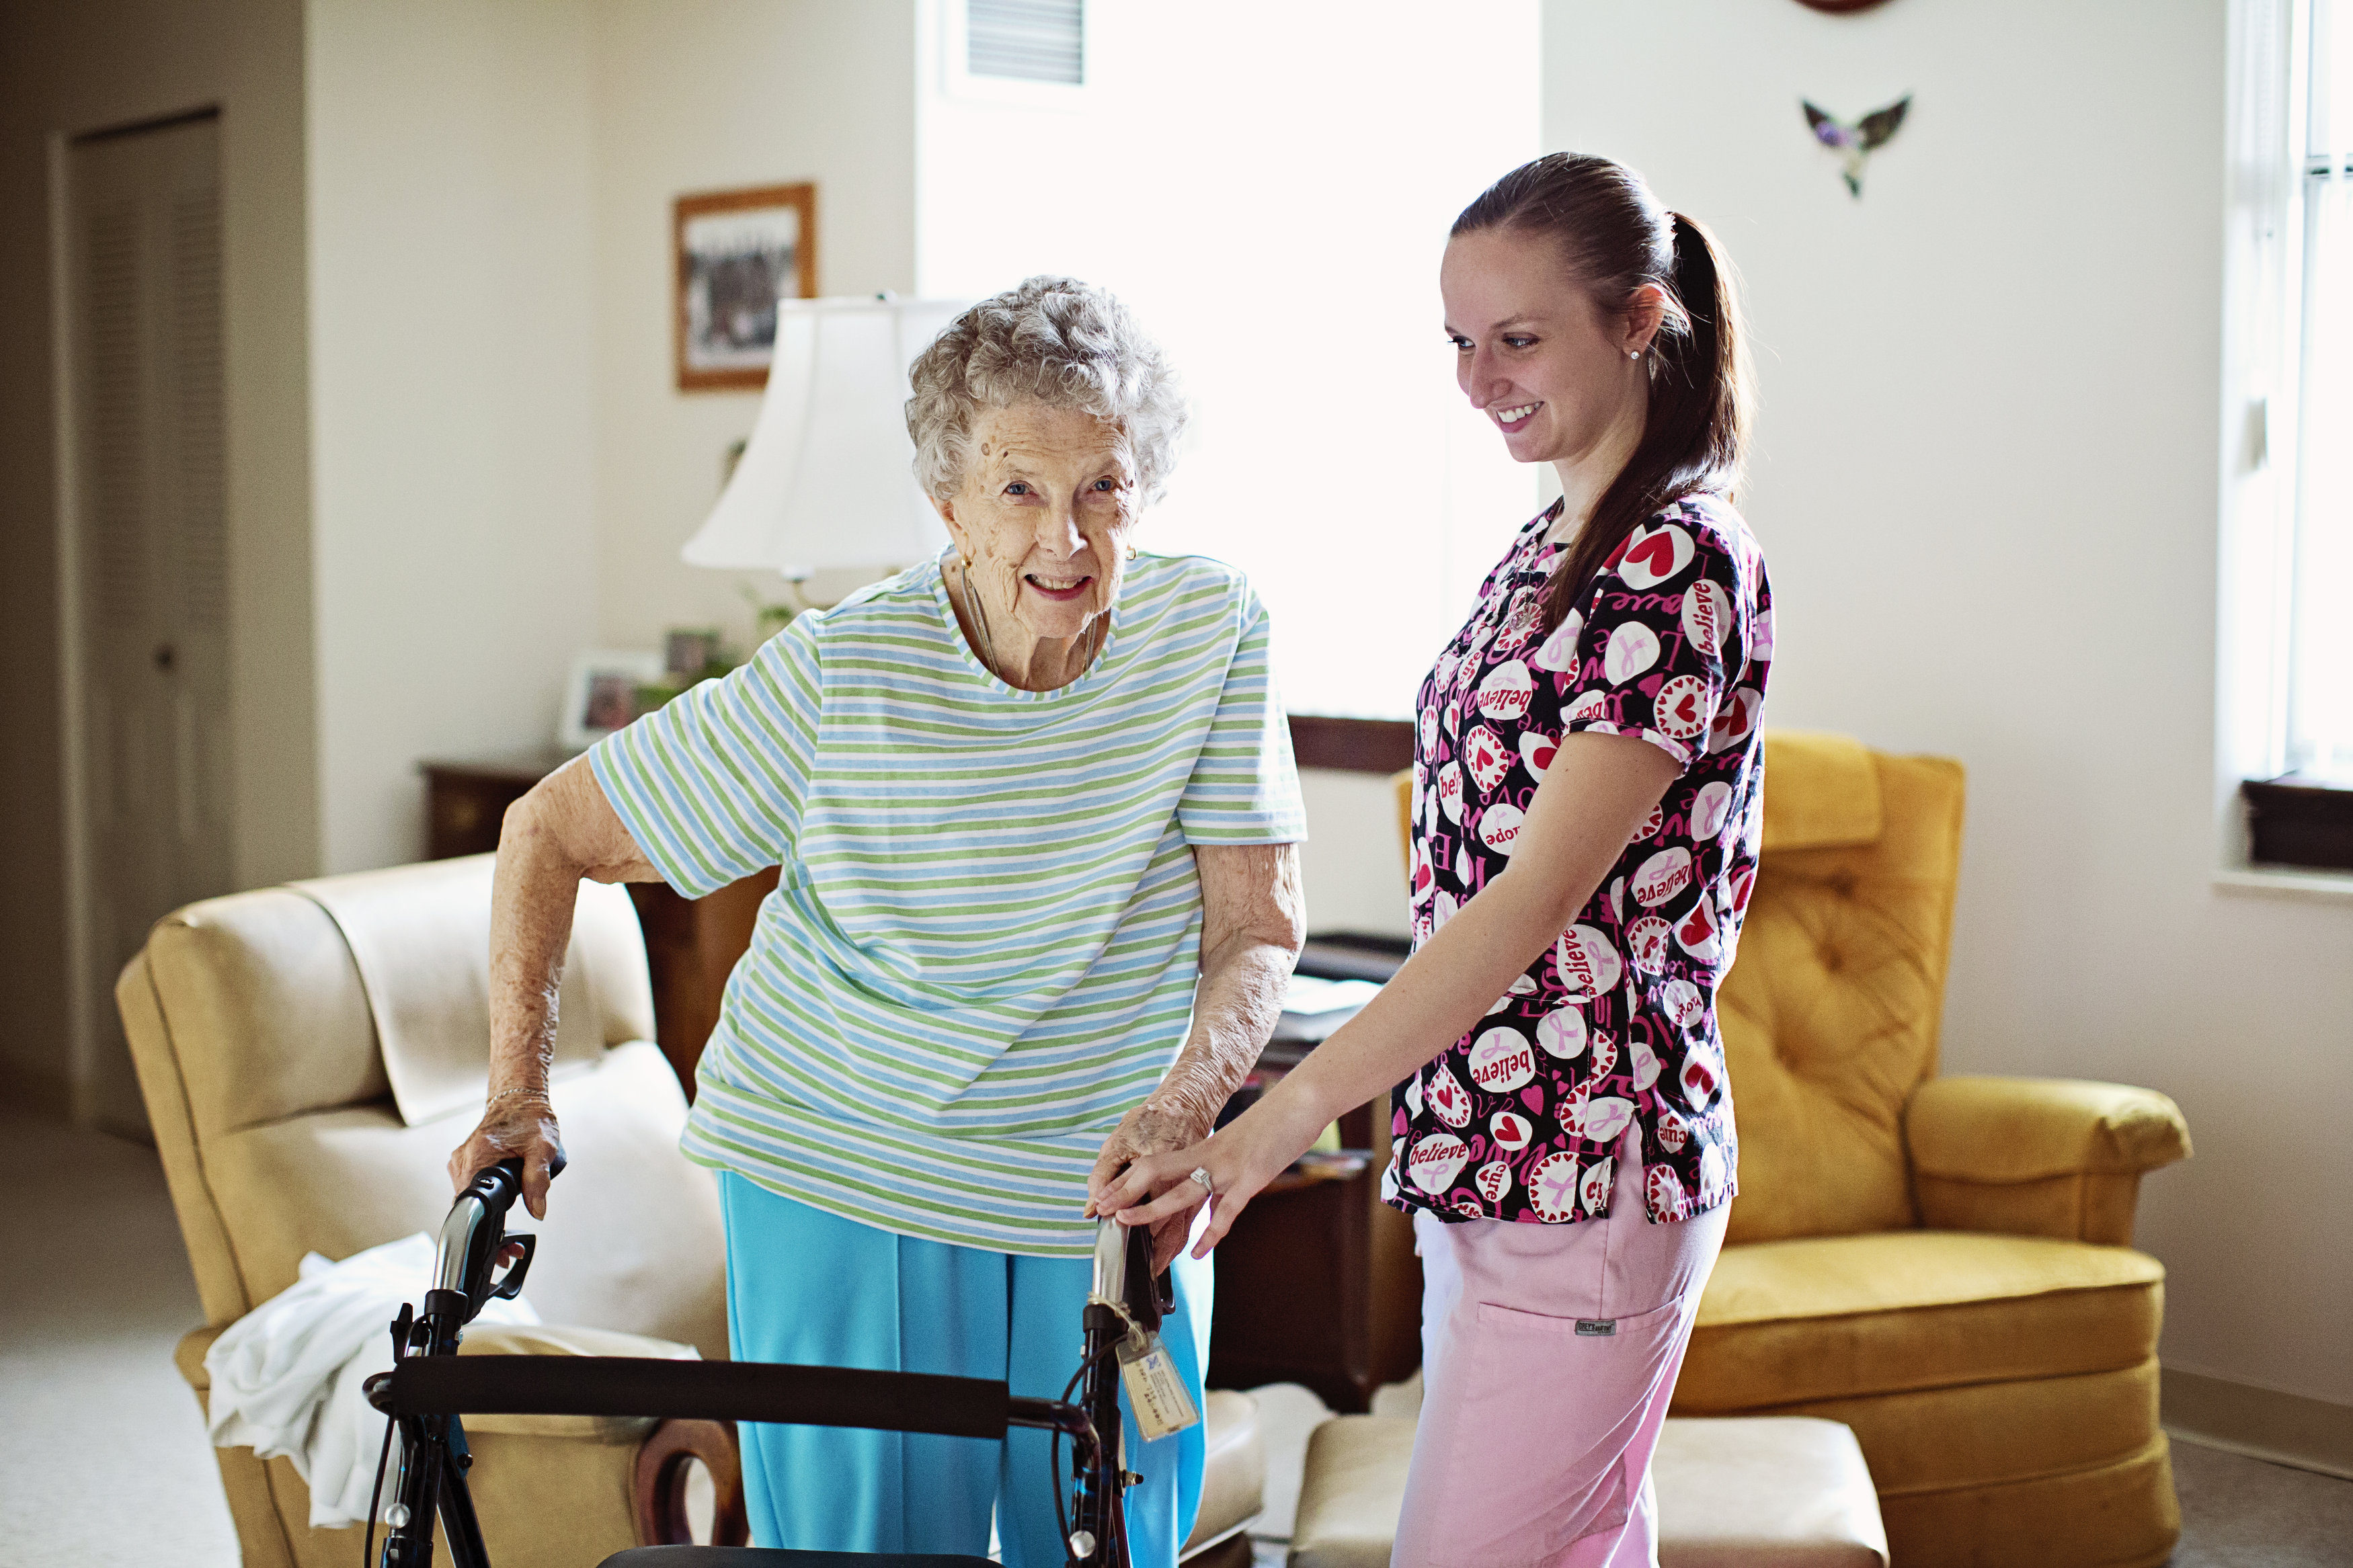 Home Health Aide worker taking care of elderly patient